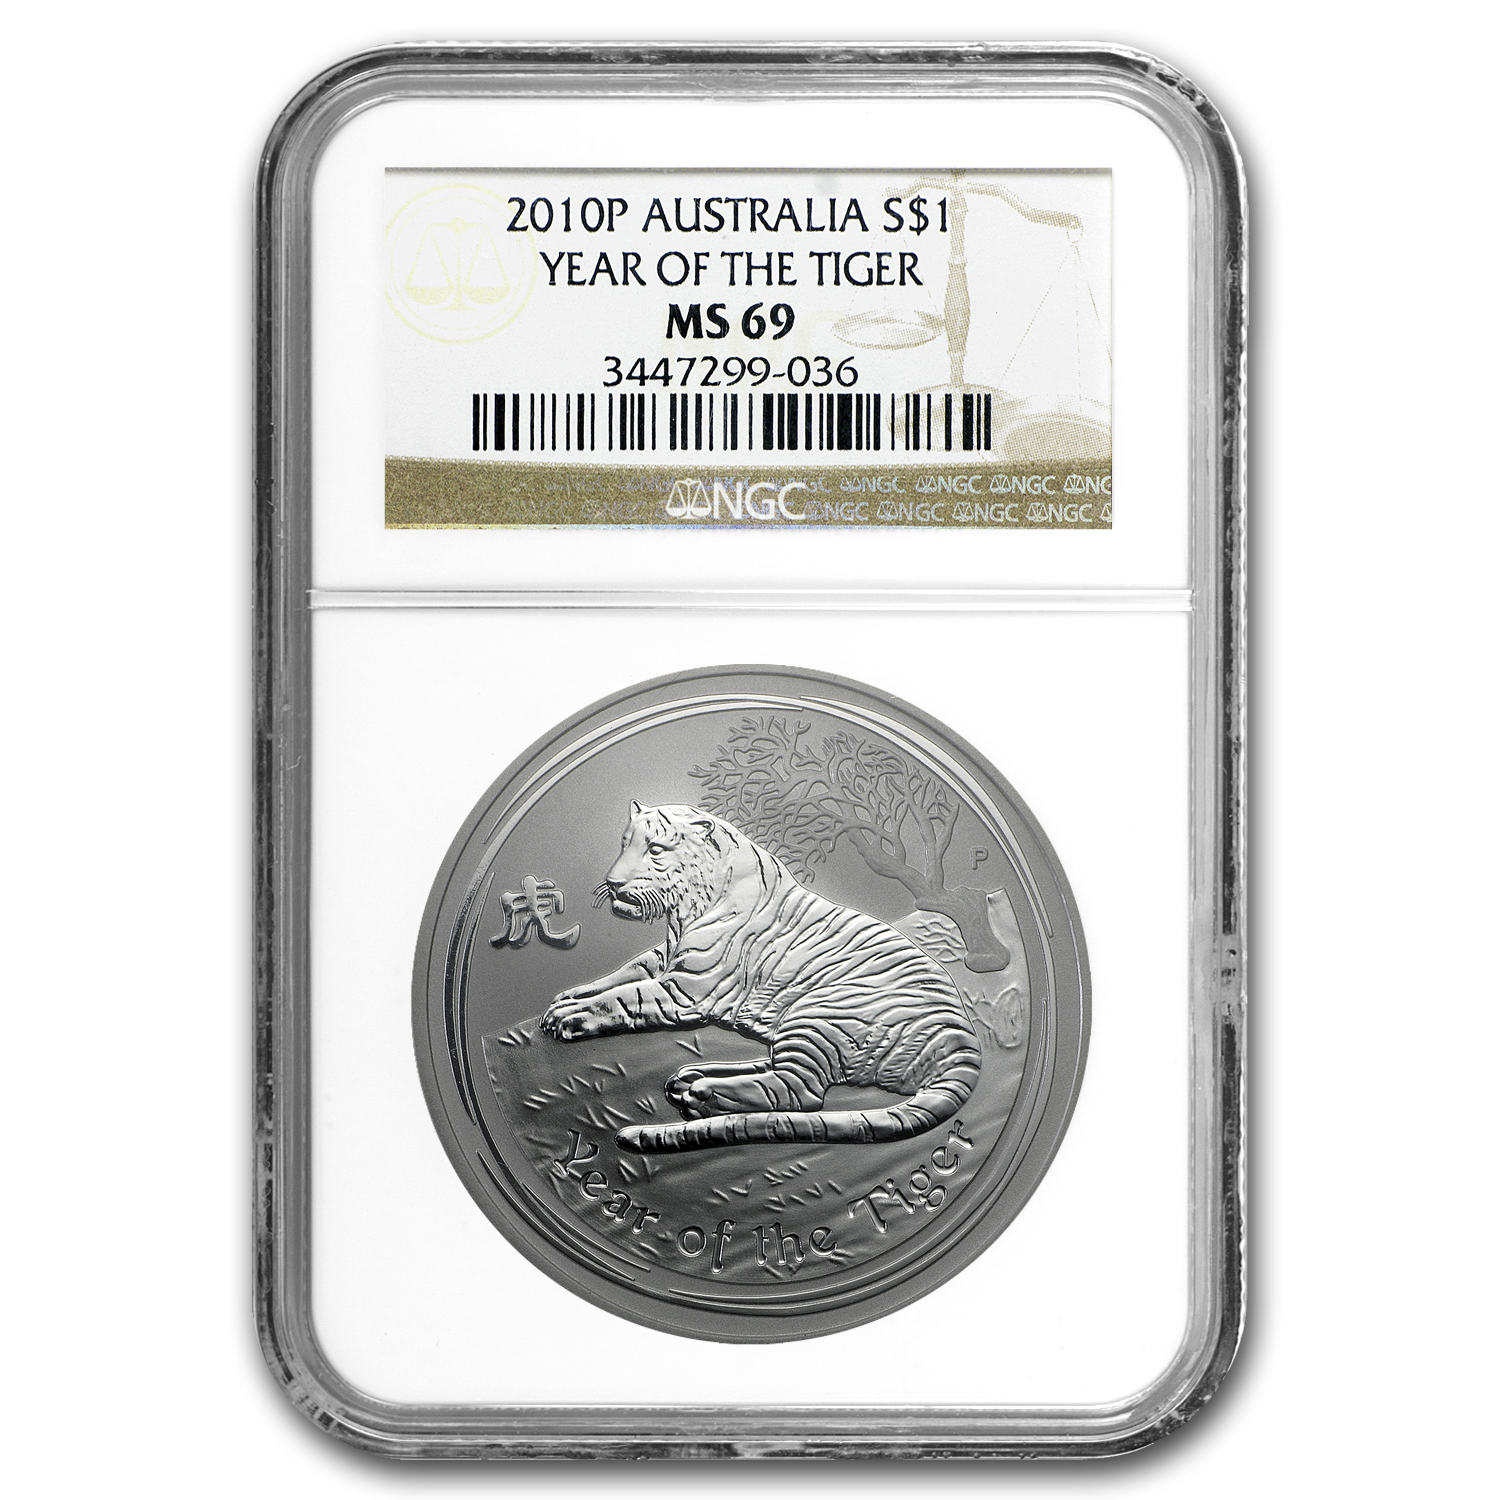 2010 Australia 1 oz Silver Tiger MS-69 NGC (Series II)